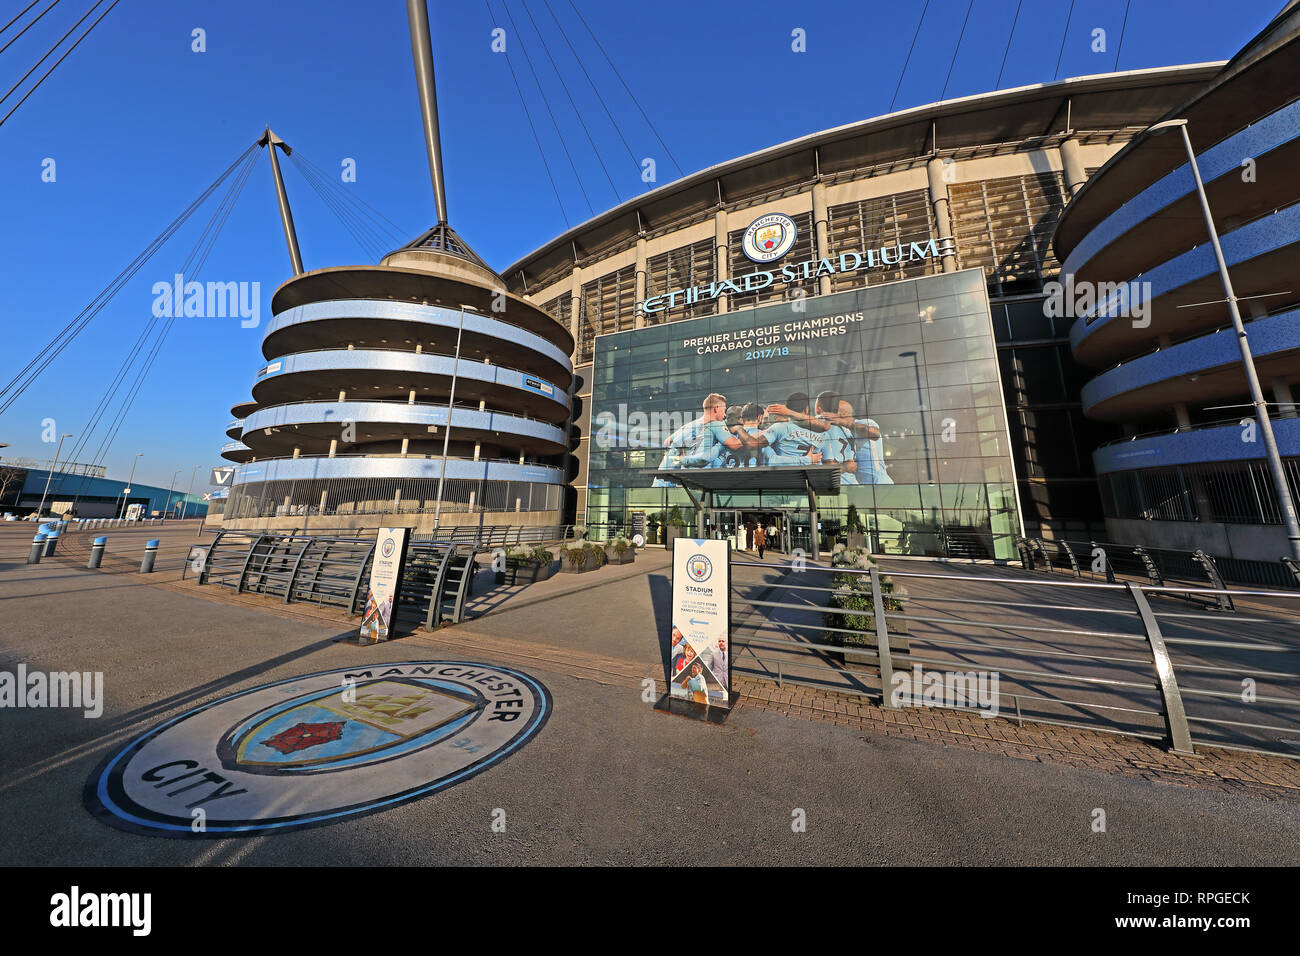 City of Manchester Stadium, The Etihad, MCFC, 13 Rowsley St, East Manchester,  M11 3FF - Stock Image